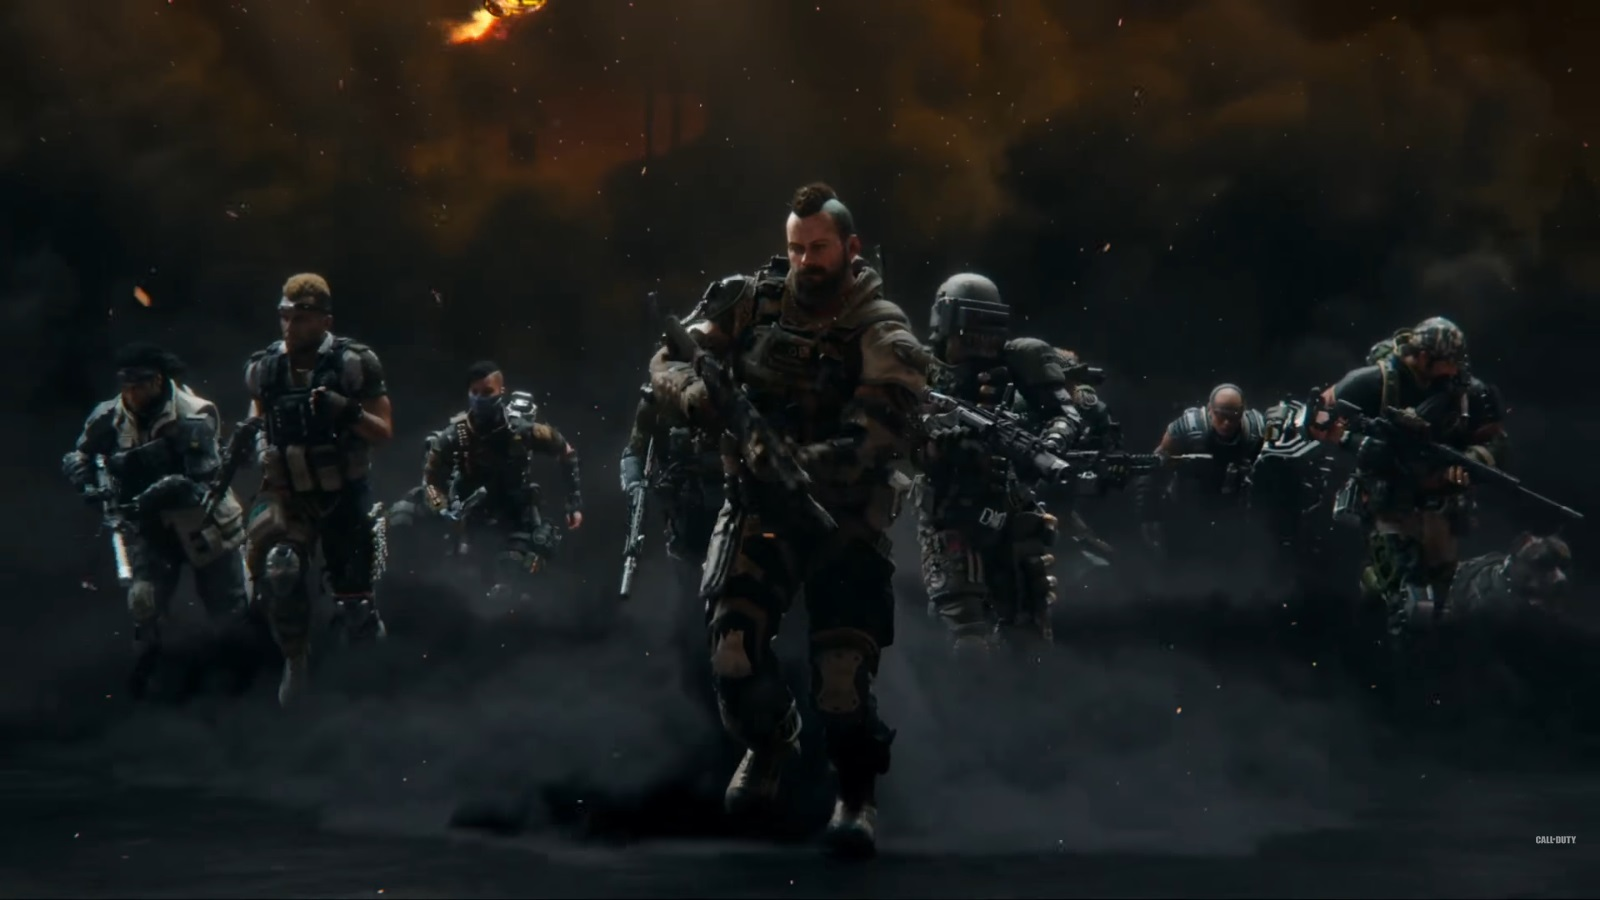 Download Black Ops 4 Wallpaper Hd Backgrounds Download